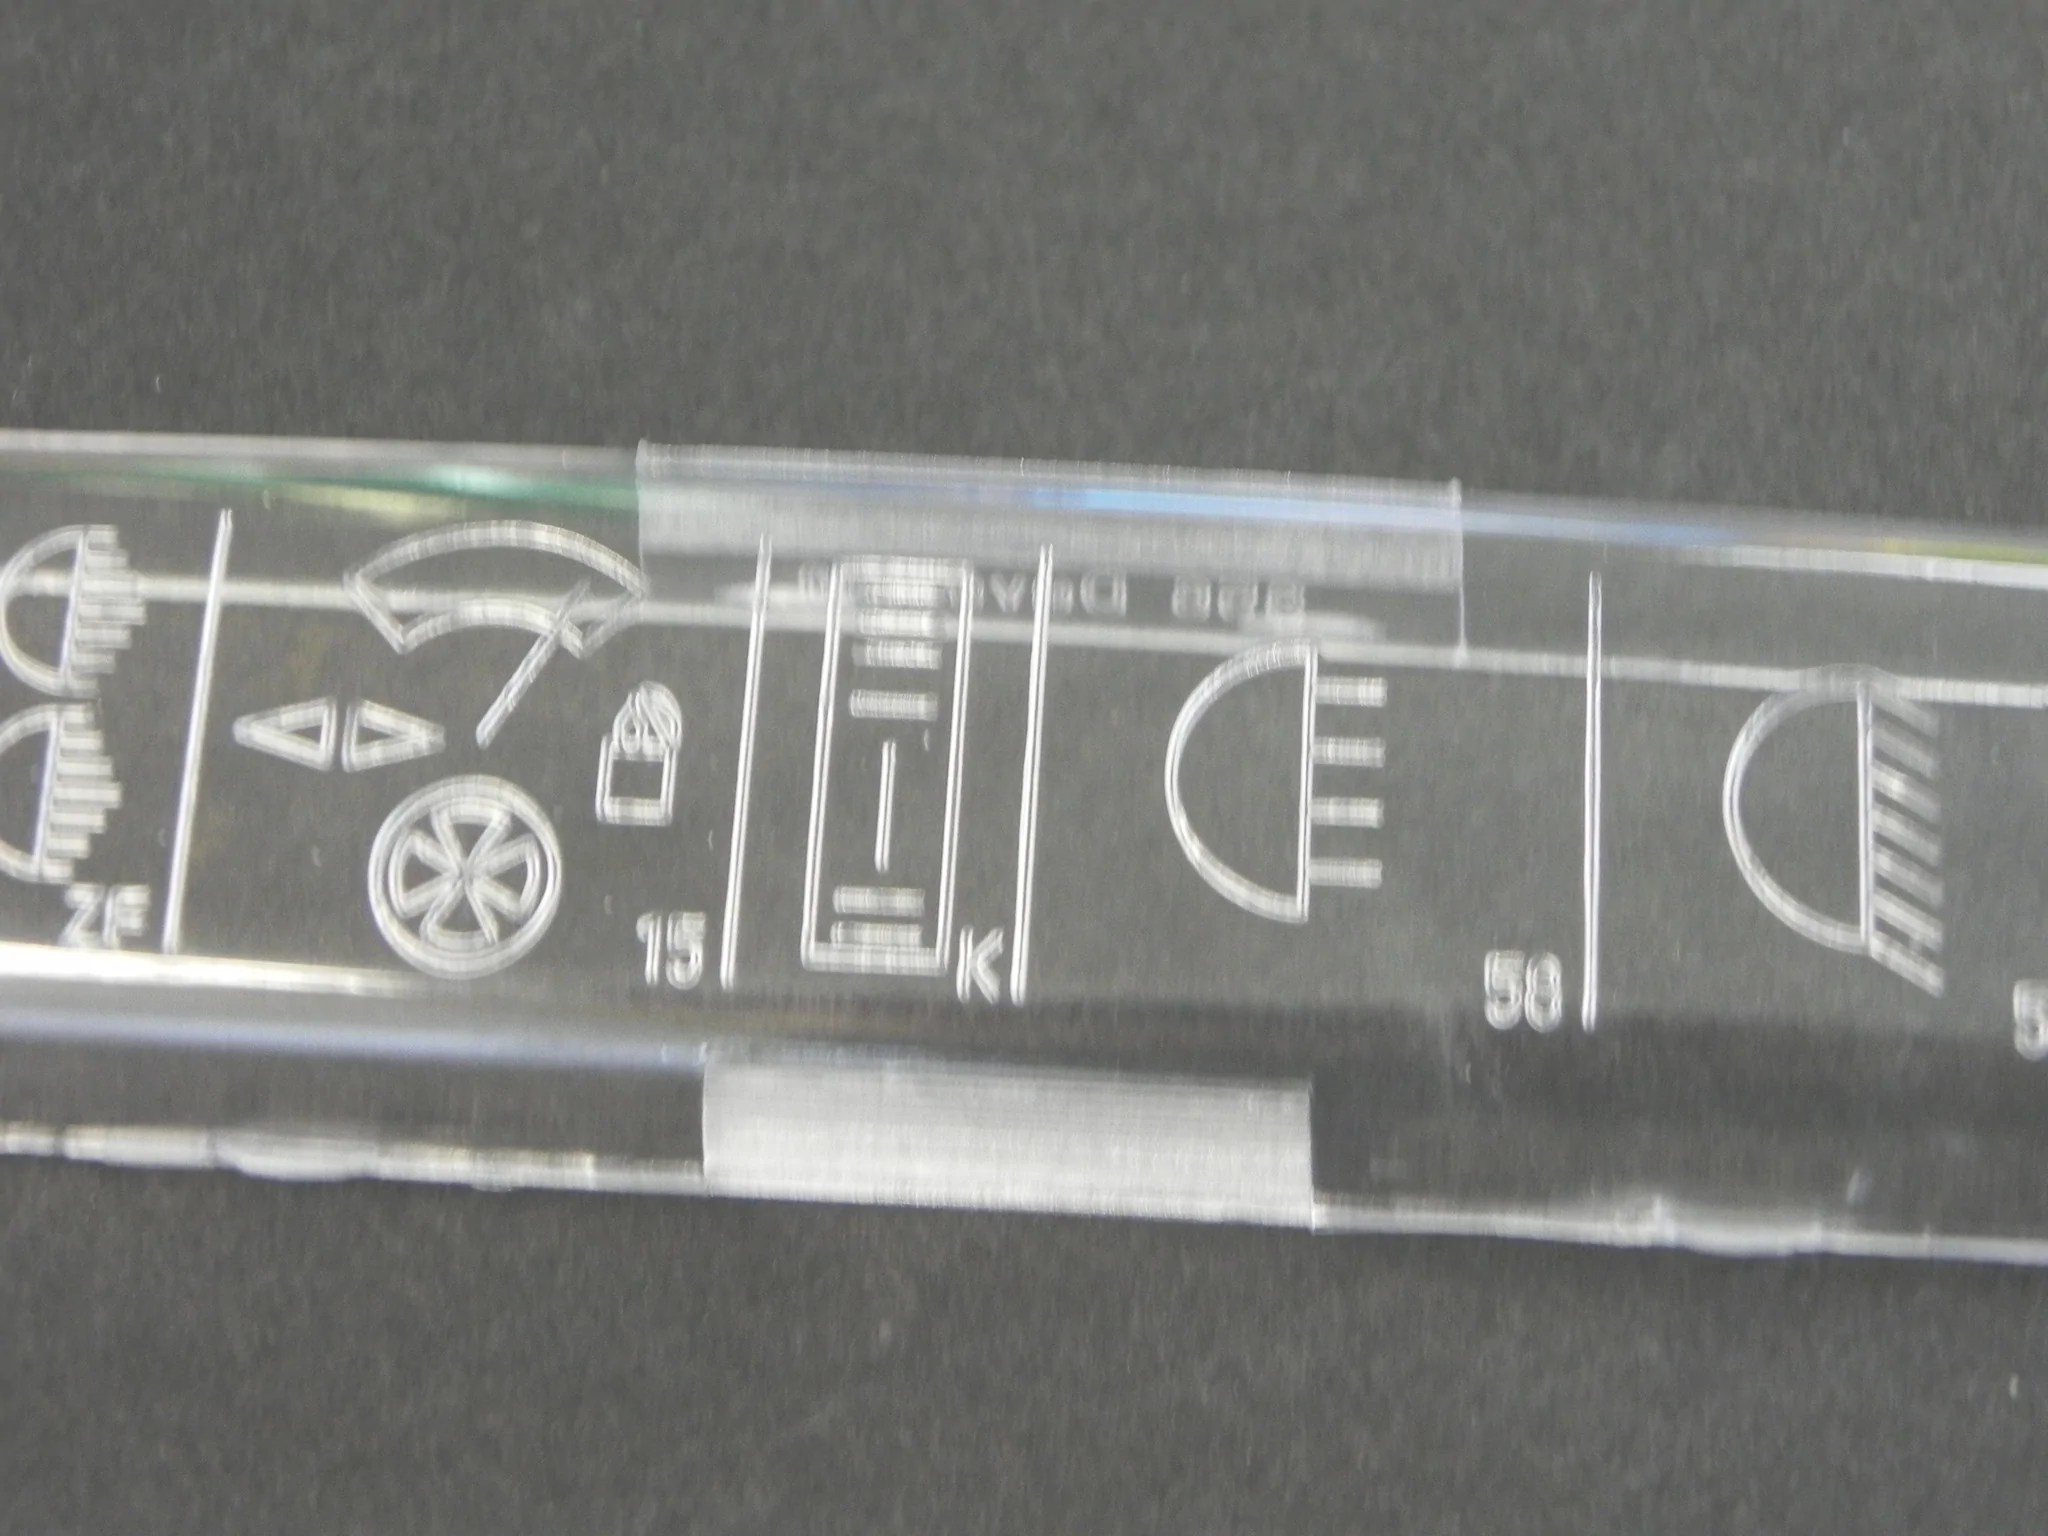 medium resolution of porsche 914 fuse box cover lid wiring diagram papernew 914 12 pole fuse box cover